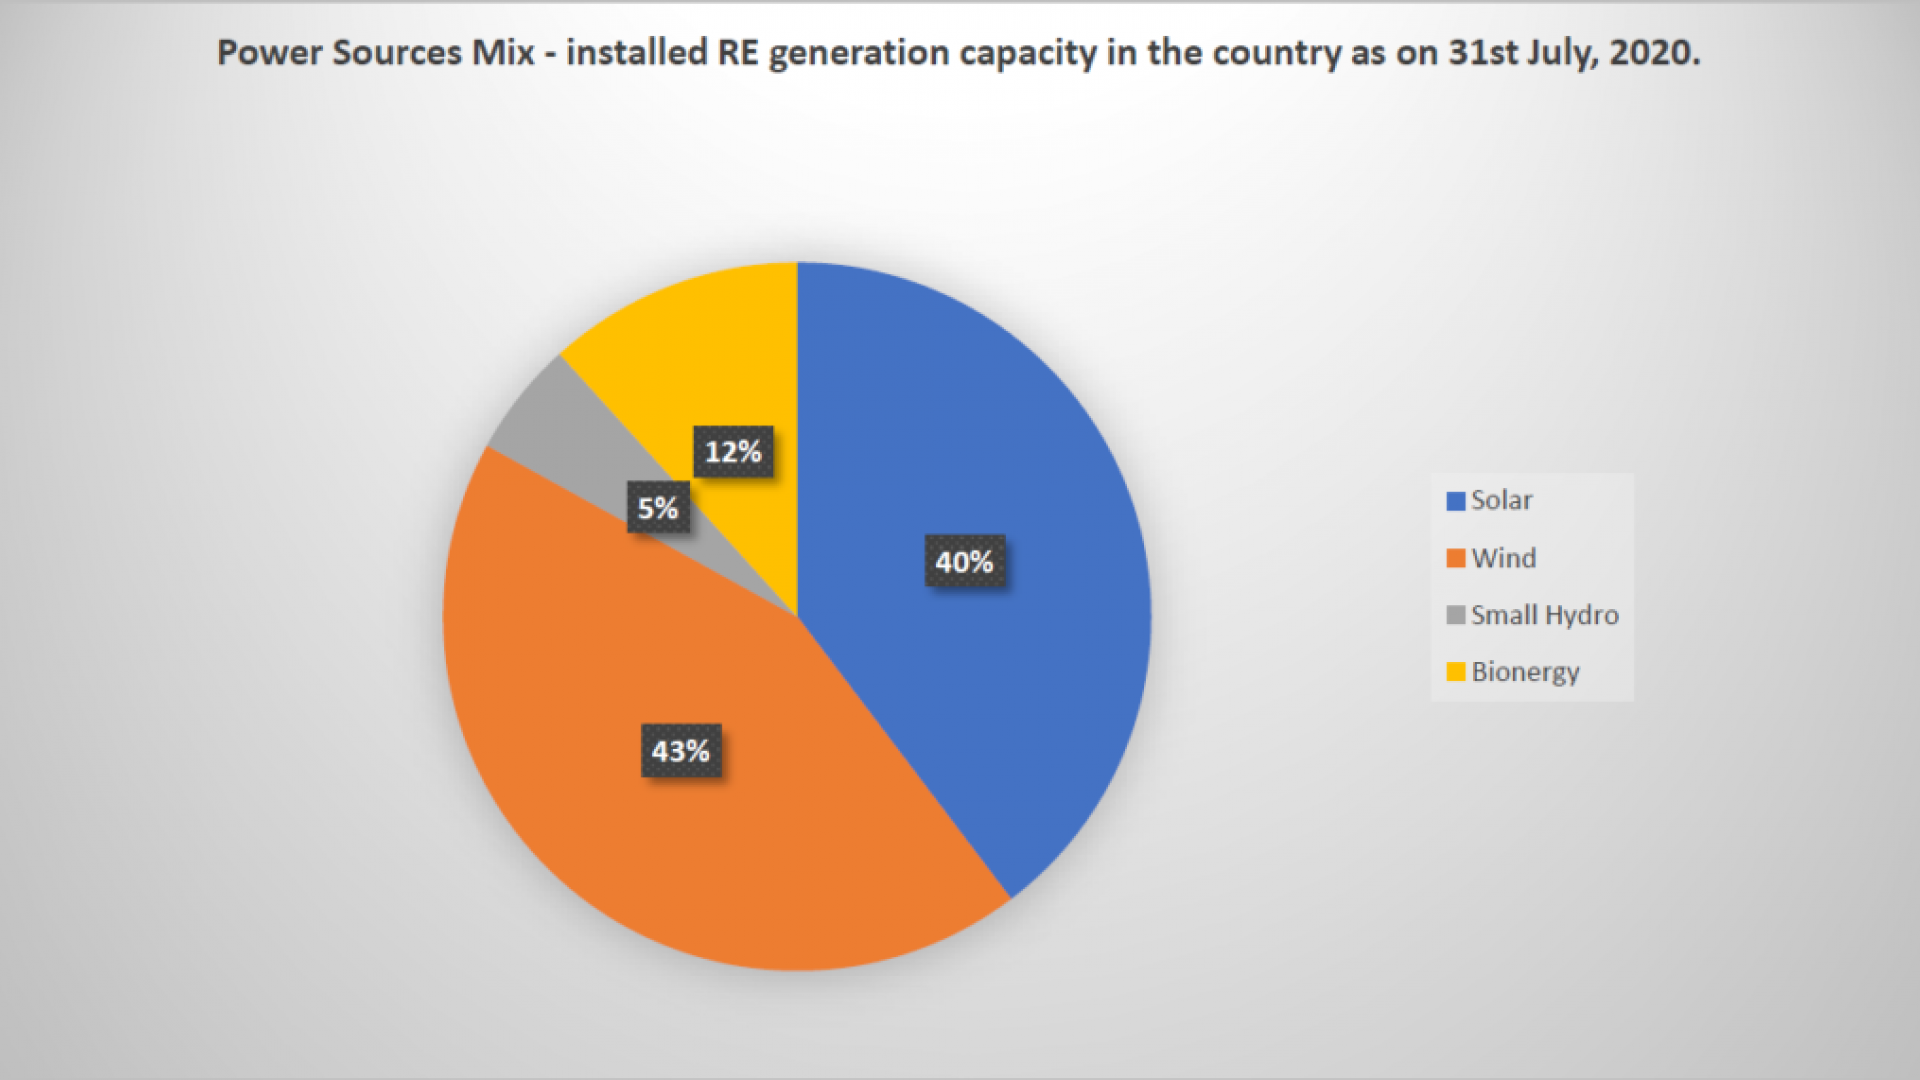 Figure 2: Power Sources Mix in the installed RE generation capacity as on 31st July 2020<br /> (Source: Vasudha Power Sector Analysis)